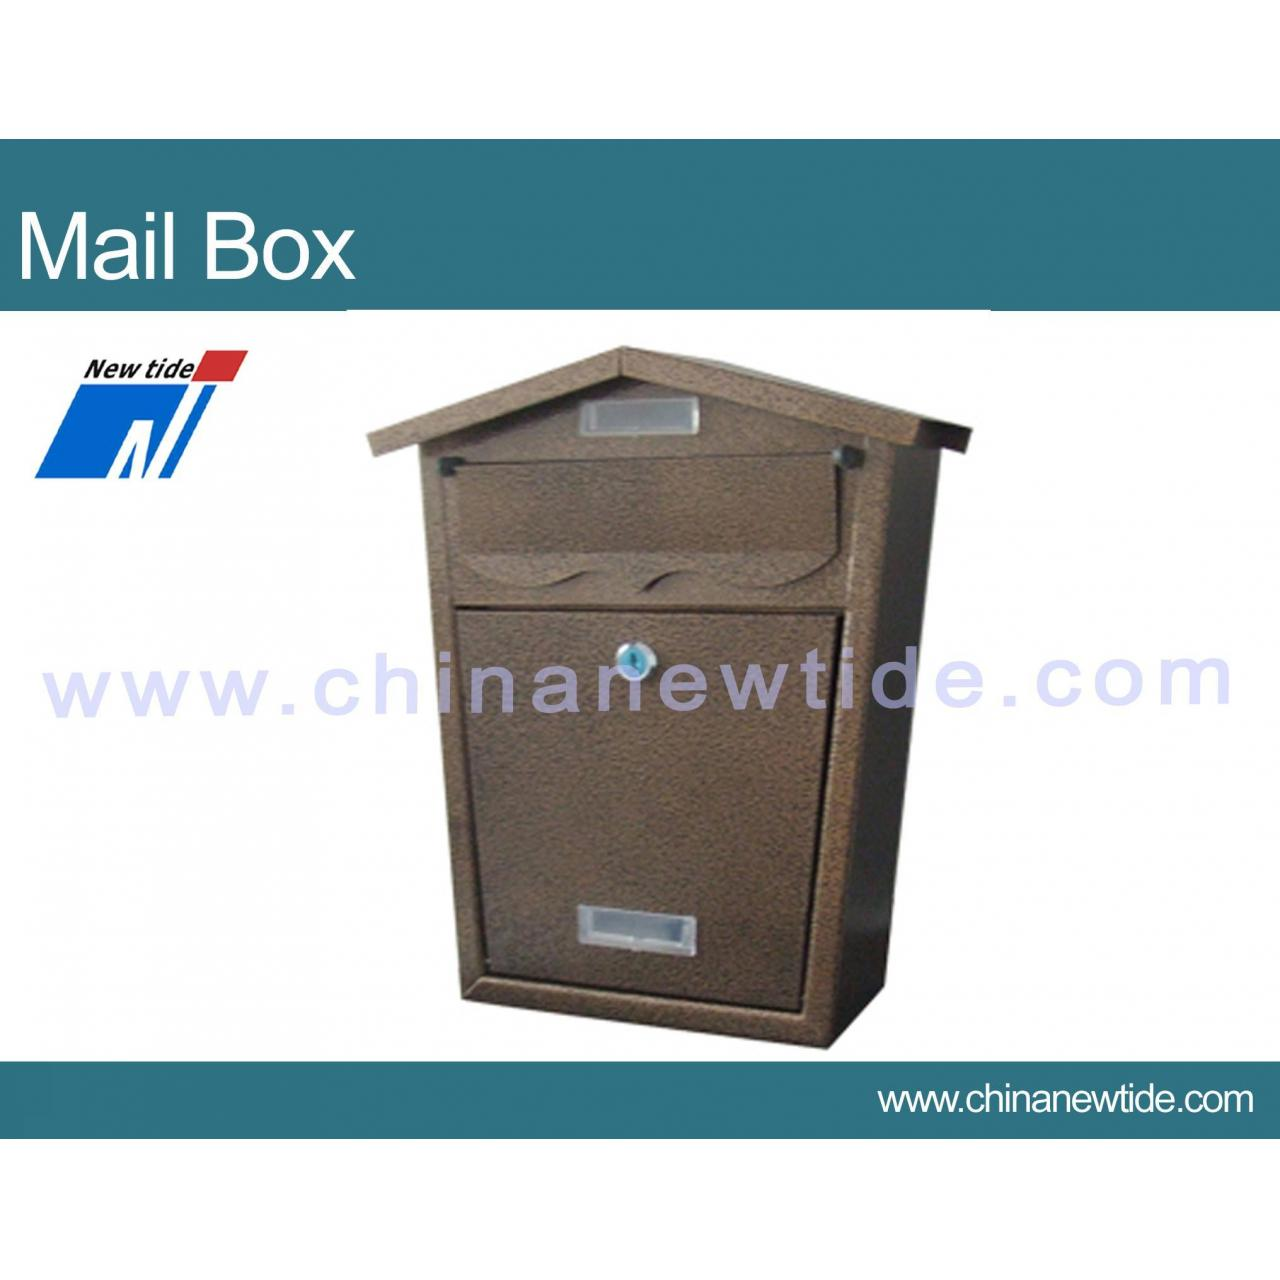 Buy cheap Mail Box product